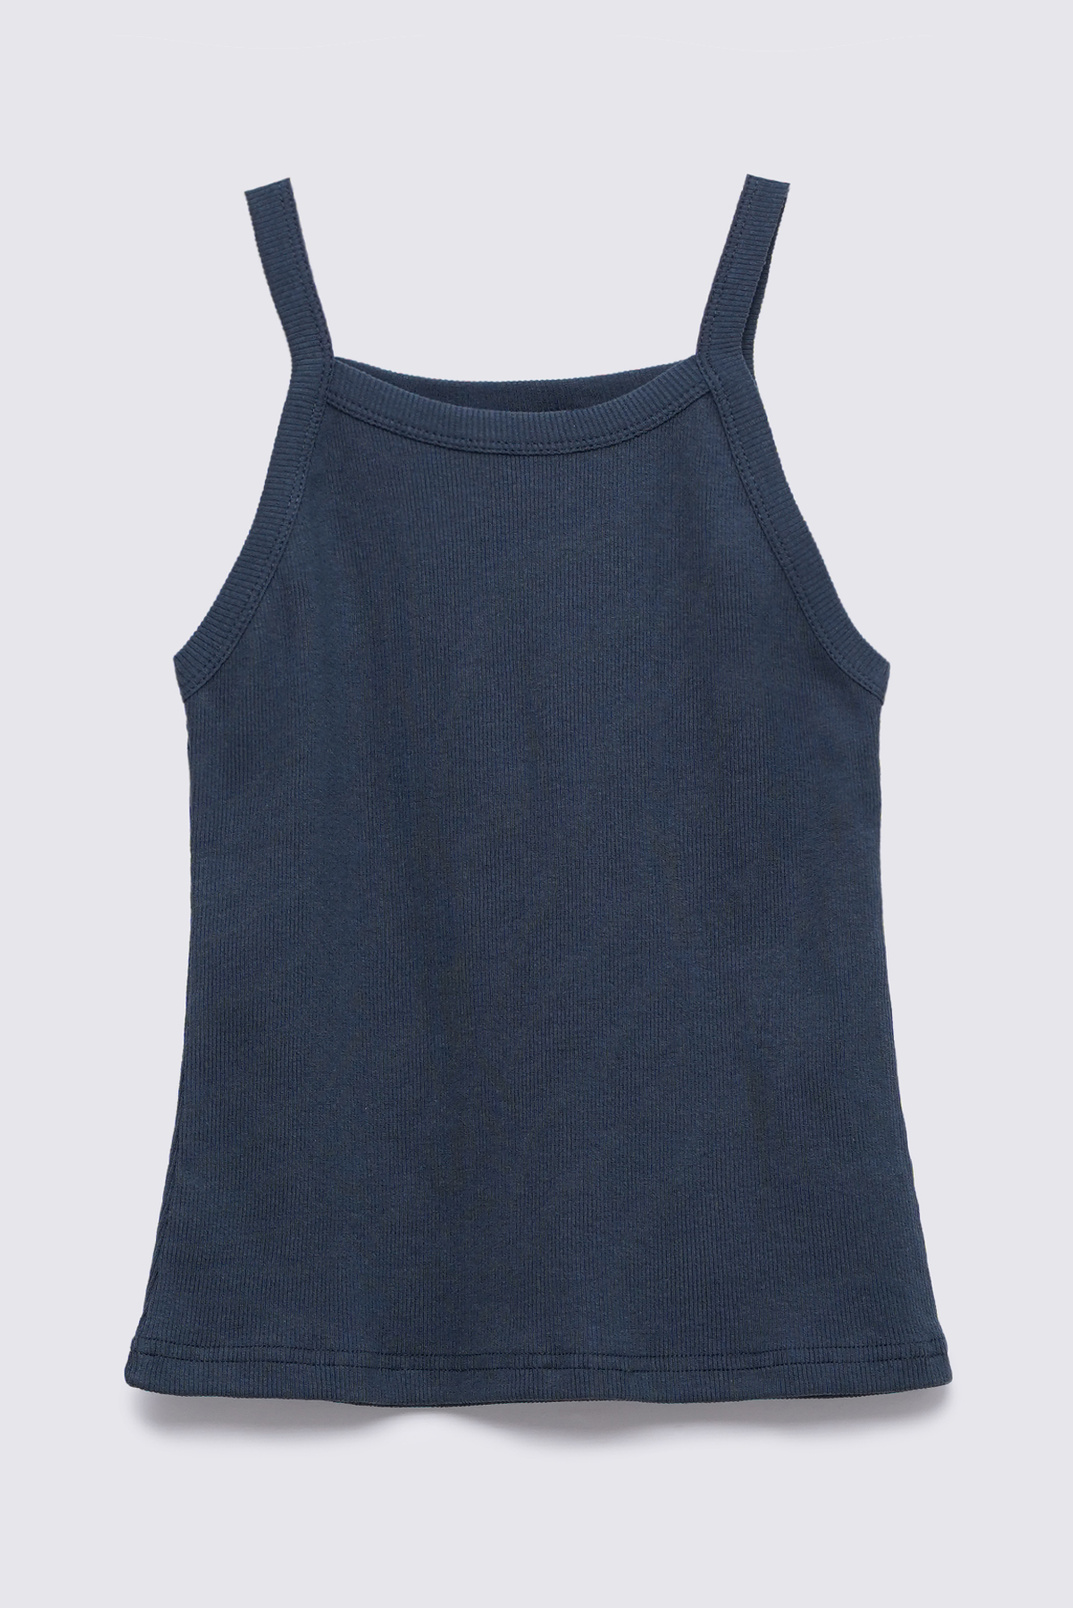 Tank top with thin straps, Dark grey, S